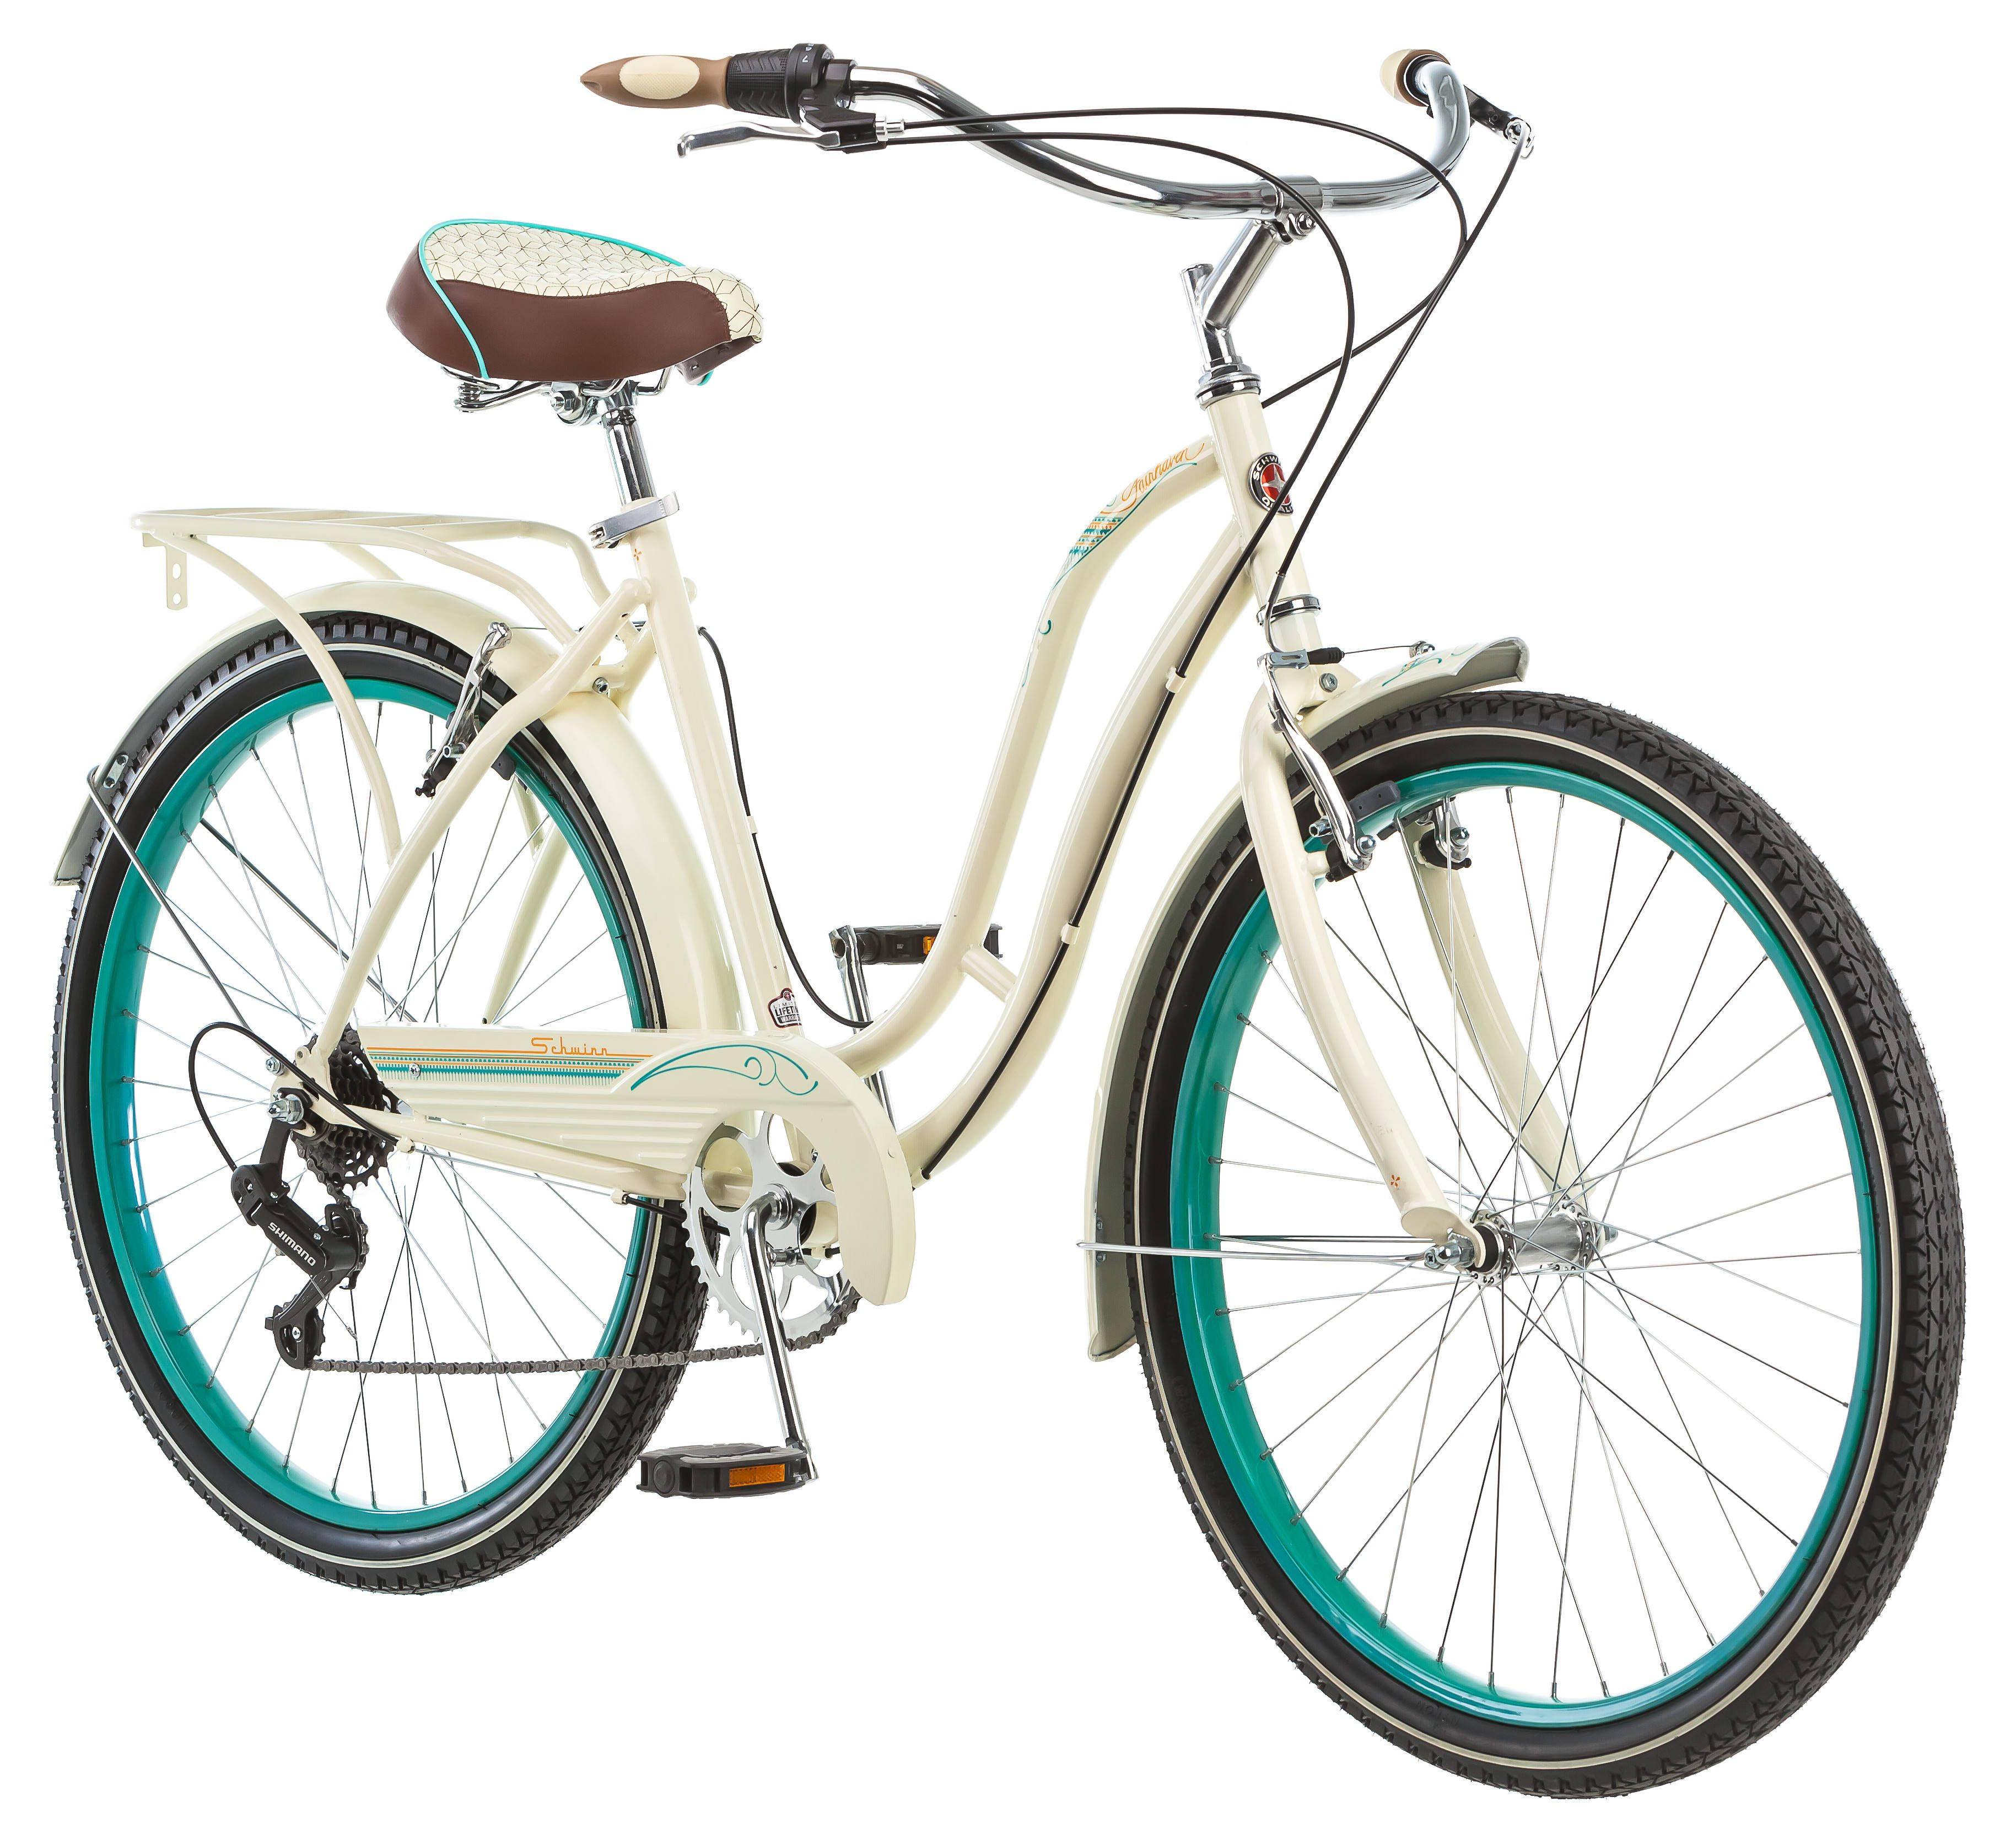 Road bikes 700c gmc denali road bike 20 mens bike goldblack read more reviews of the product by visiting the link on the image